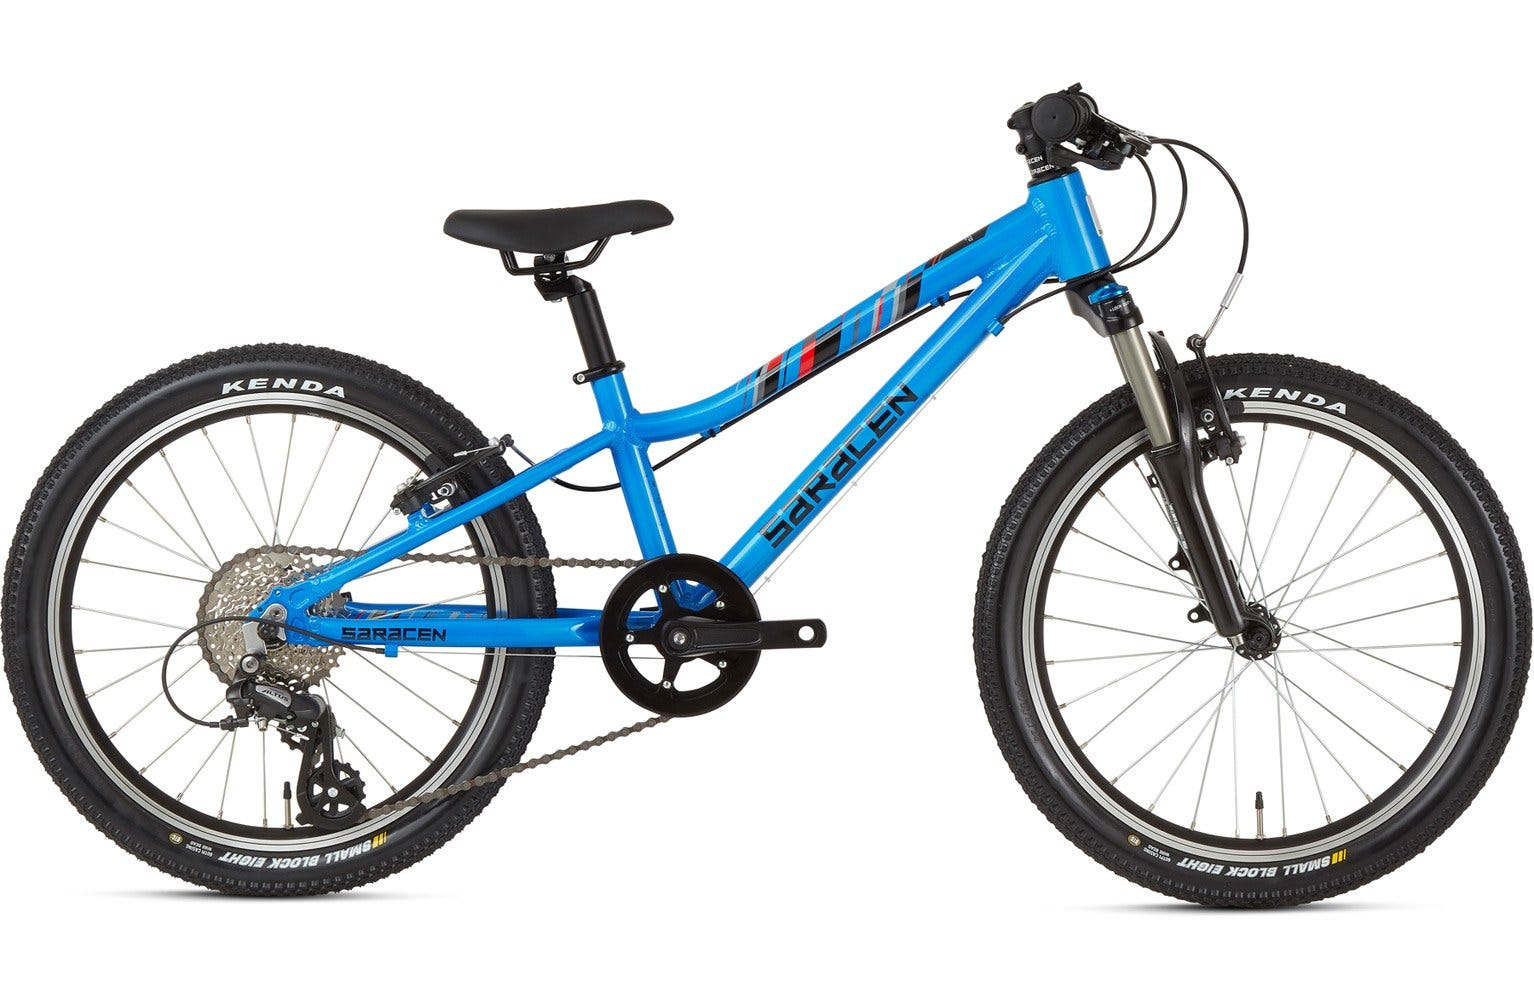 Saracen Mantra 20 inch bike sample (unused)